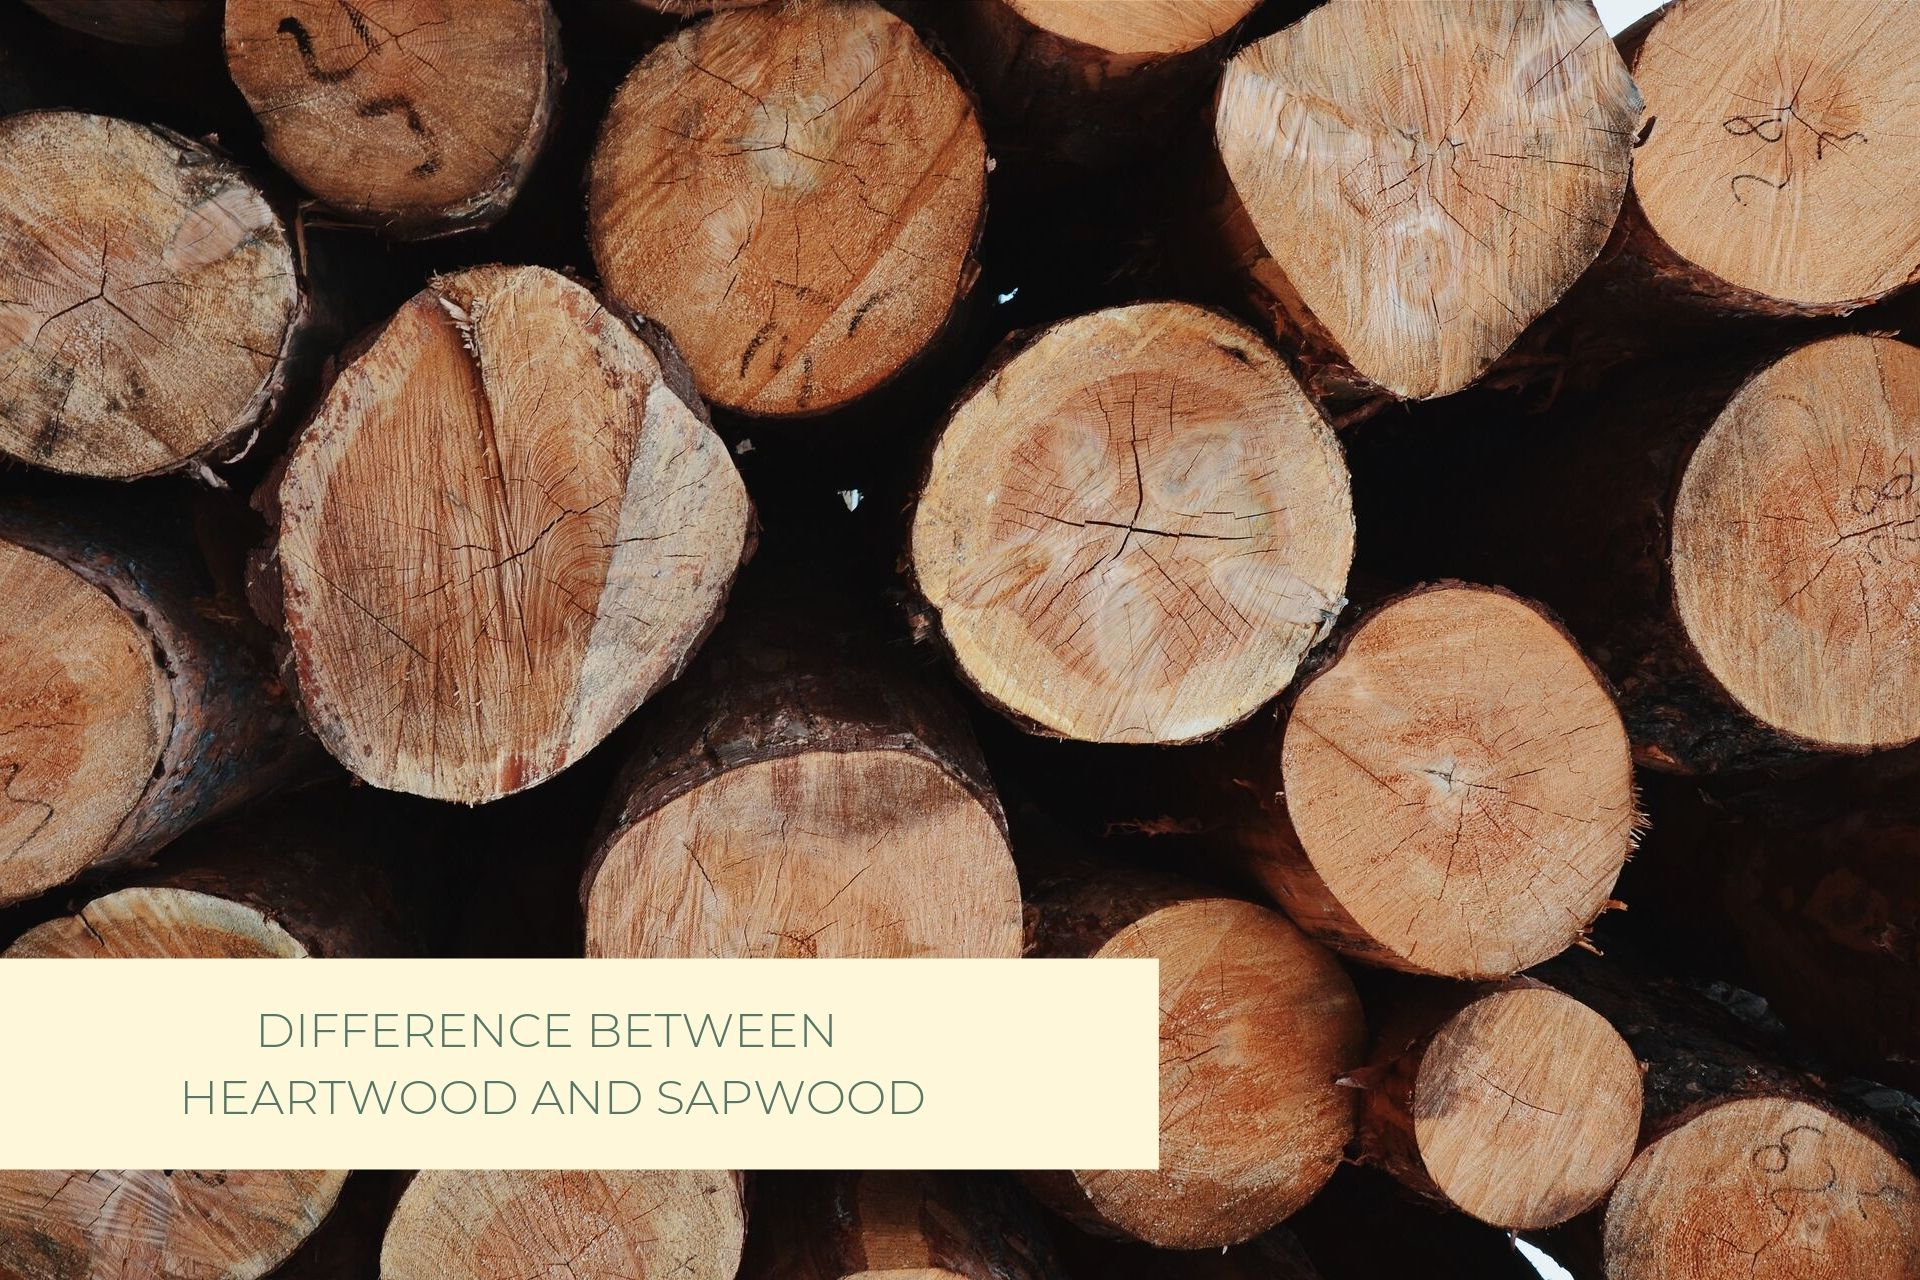 Castle Bespoke_ Difference between Heartwood and Sapwood